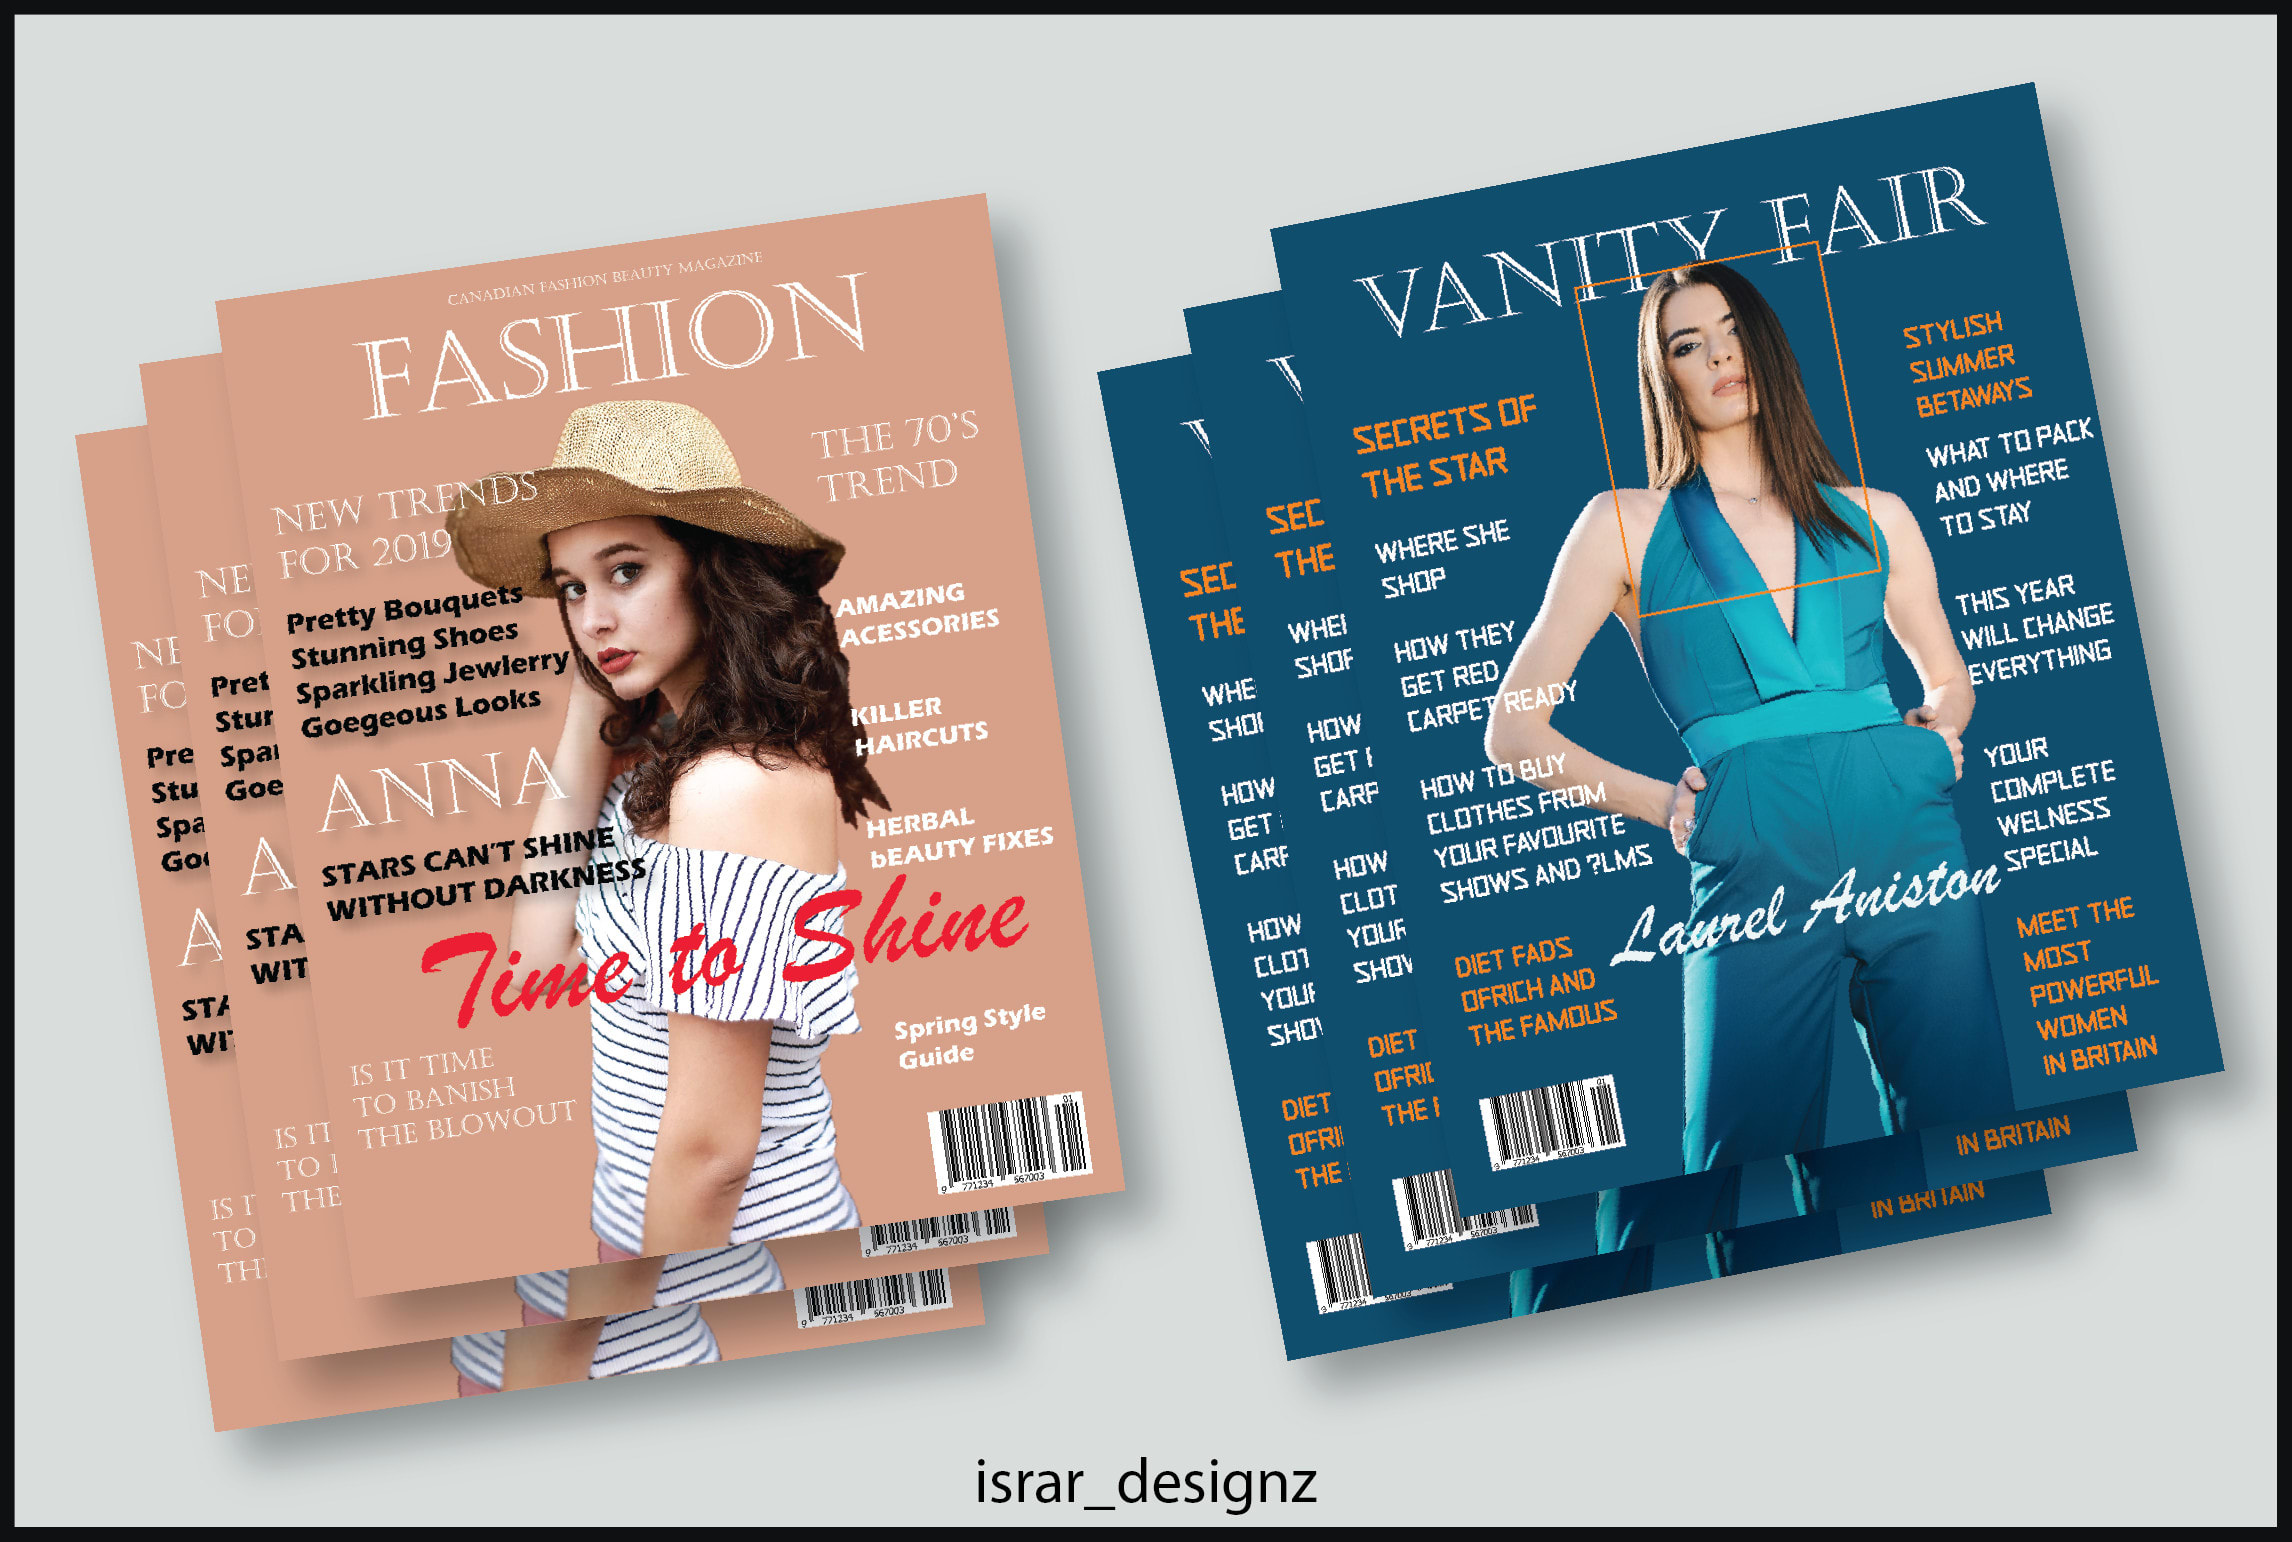 Design Book And Magazine Cover For You By Israr Designz